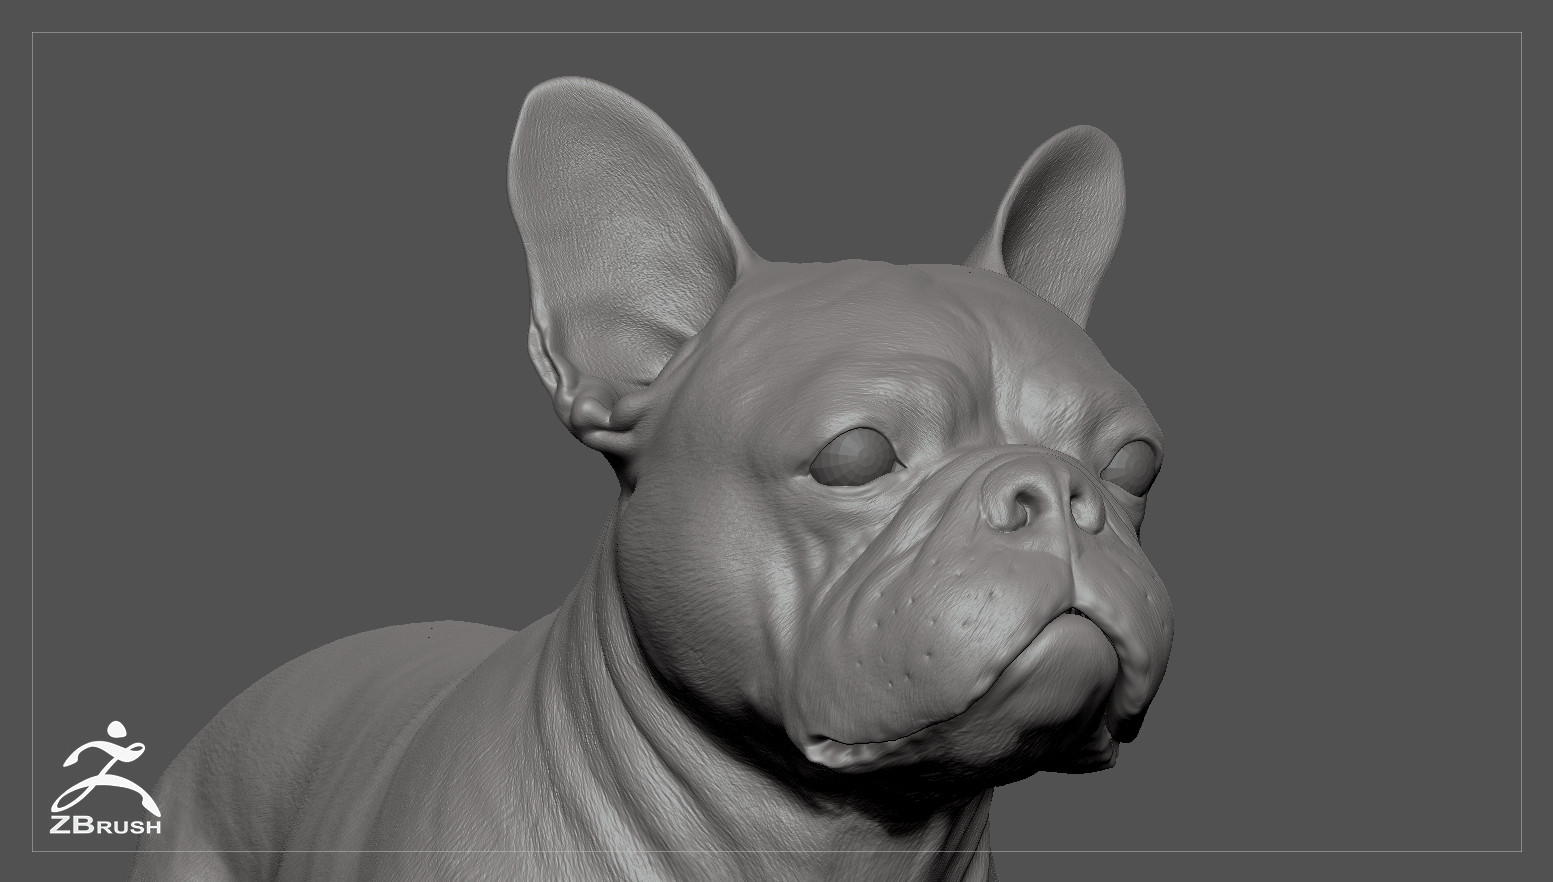 Frenchbulldog by alexlashko zbrush 05